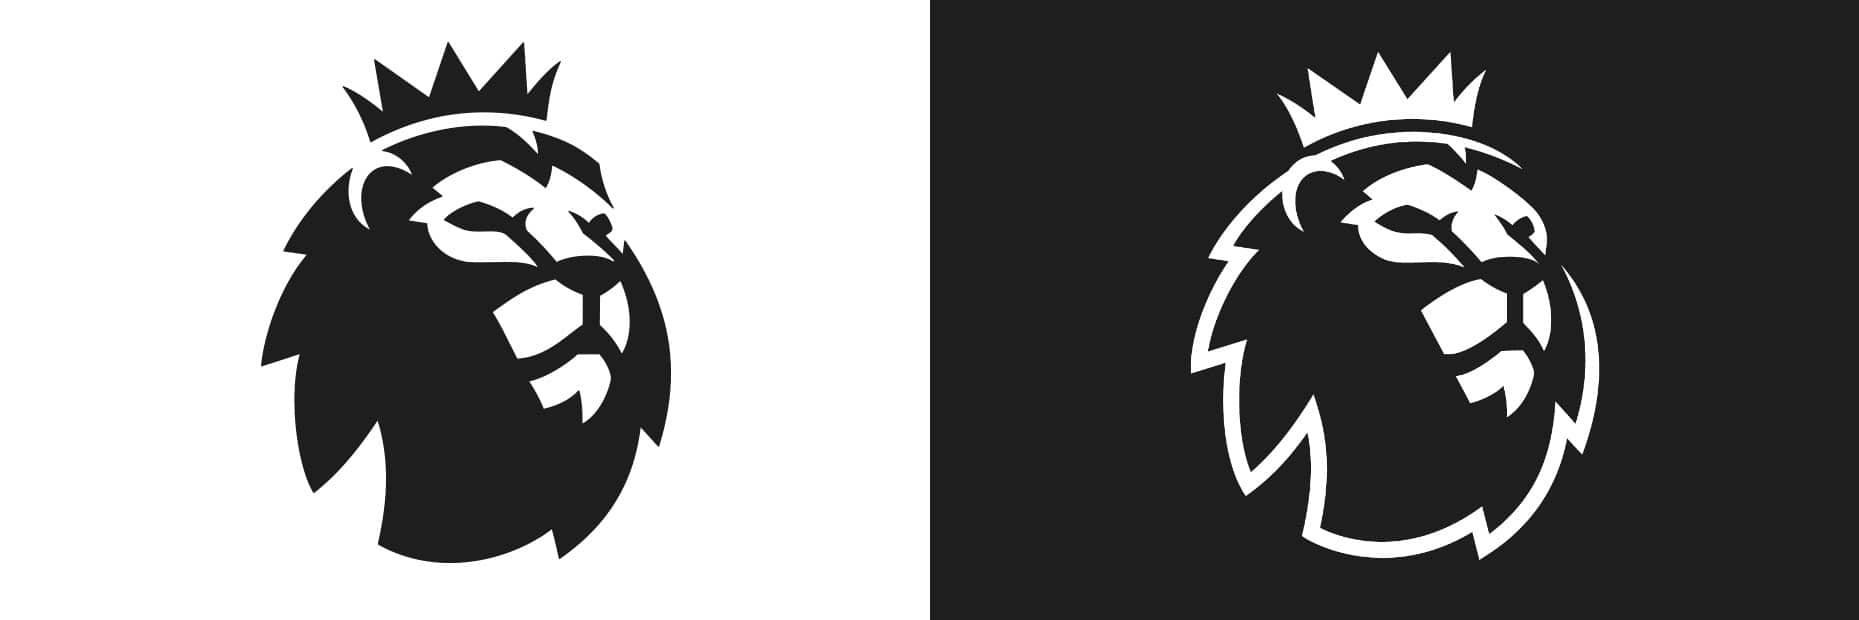 Premier League Logo Black and White variants